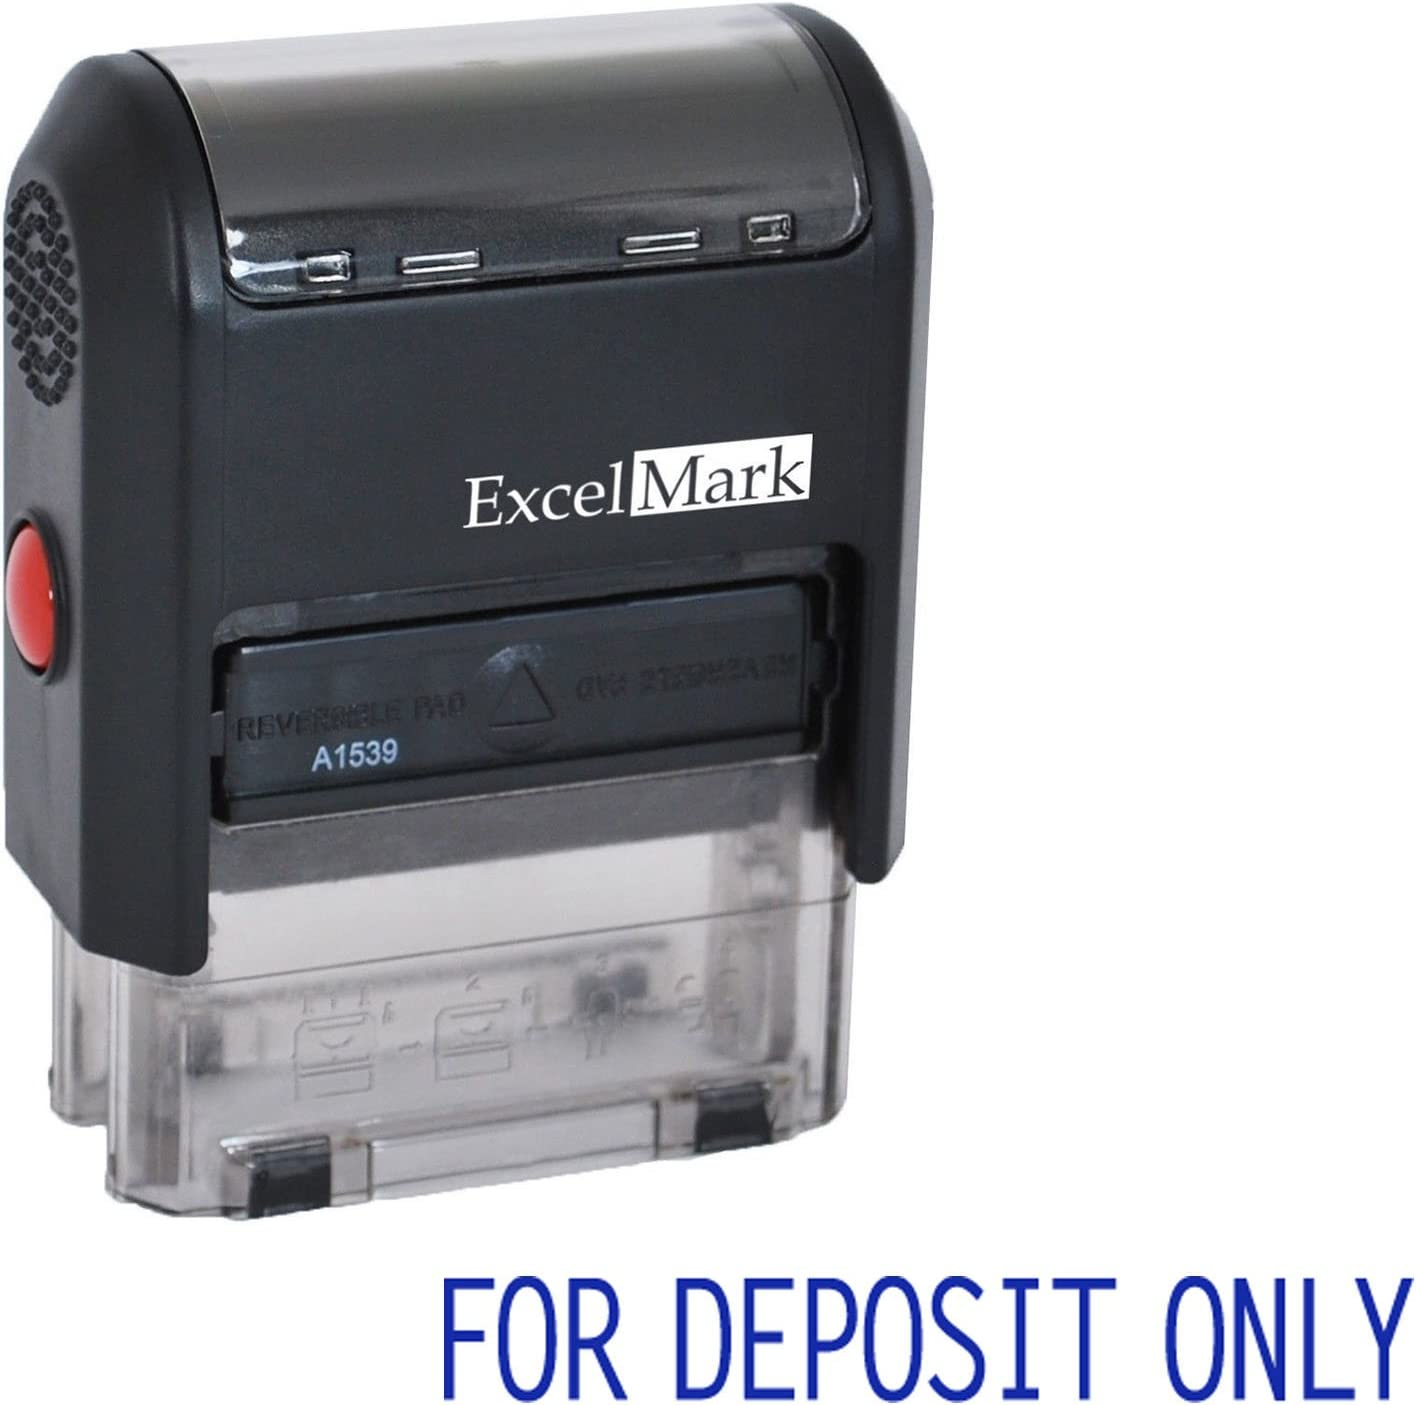 for Deposit ONLY - ExcelMark A1539 Self Inking Rubber Bank Stamp - Blue Ink